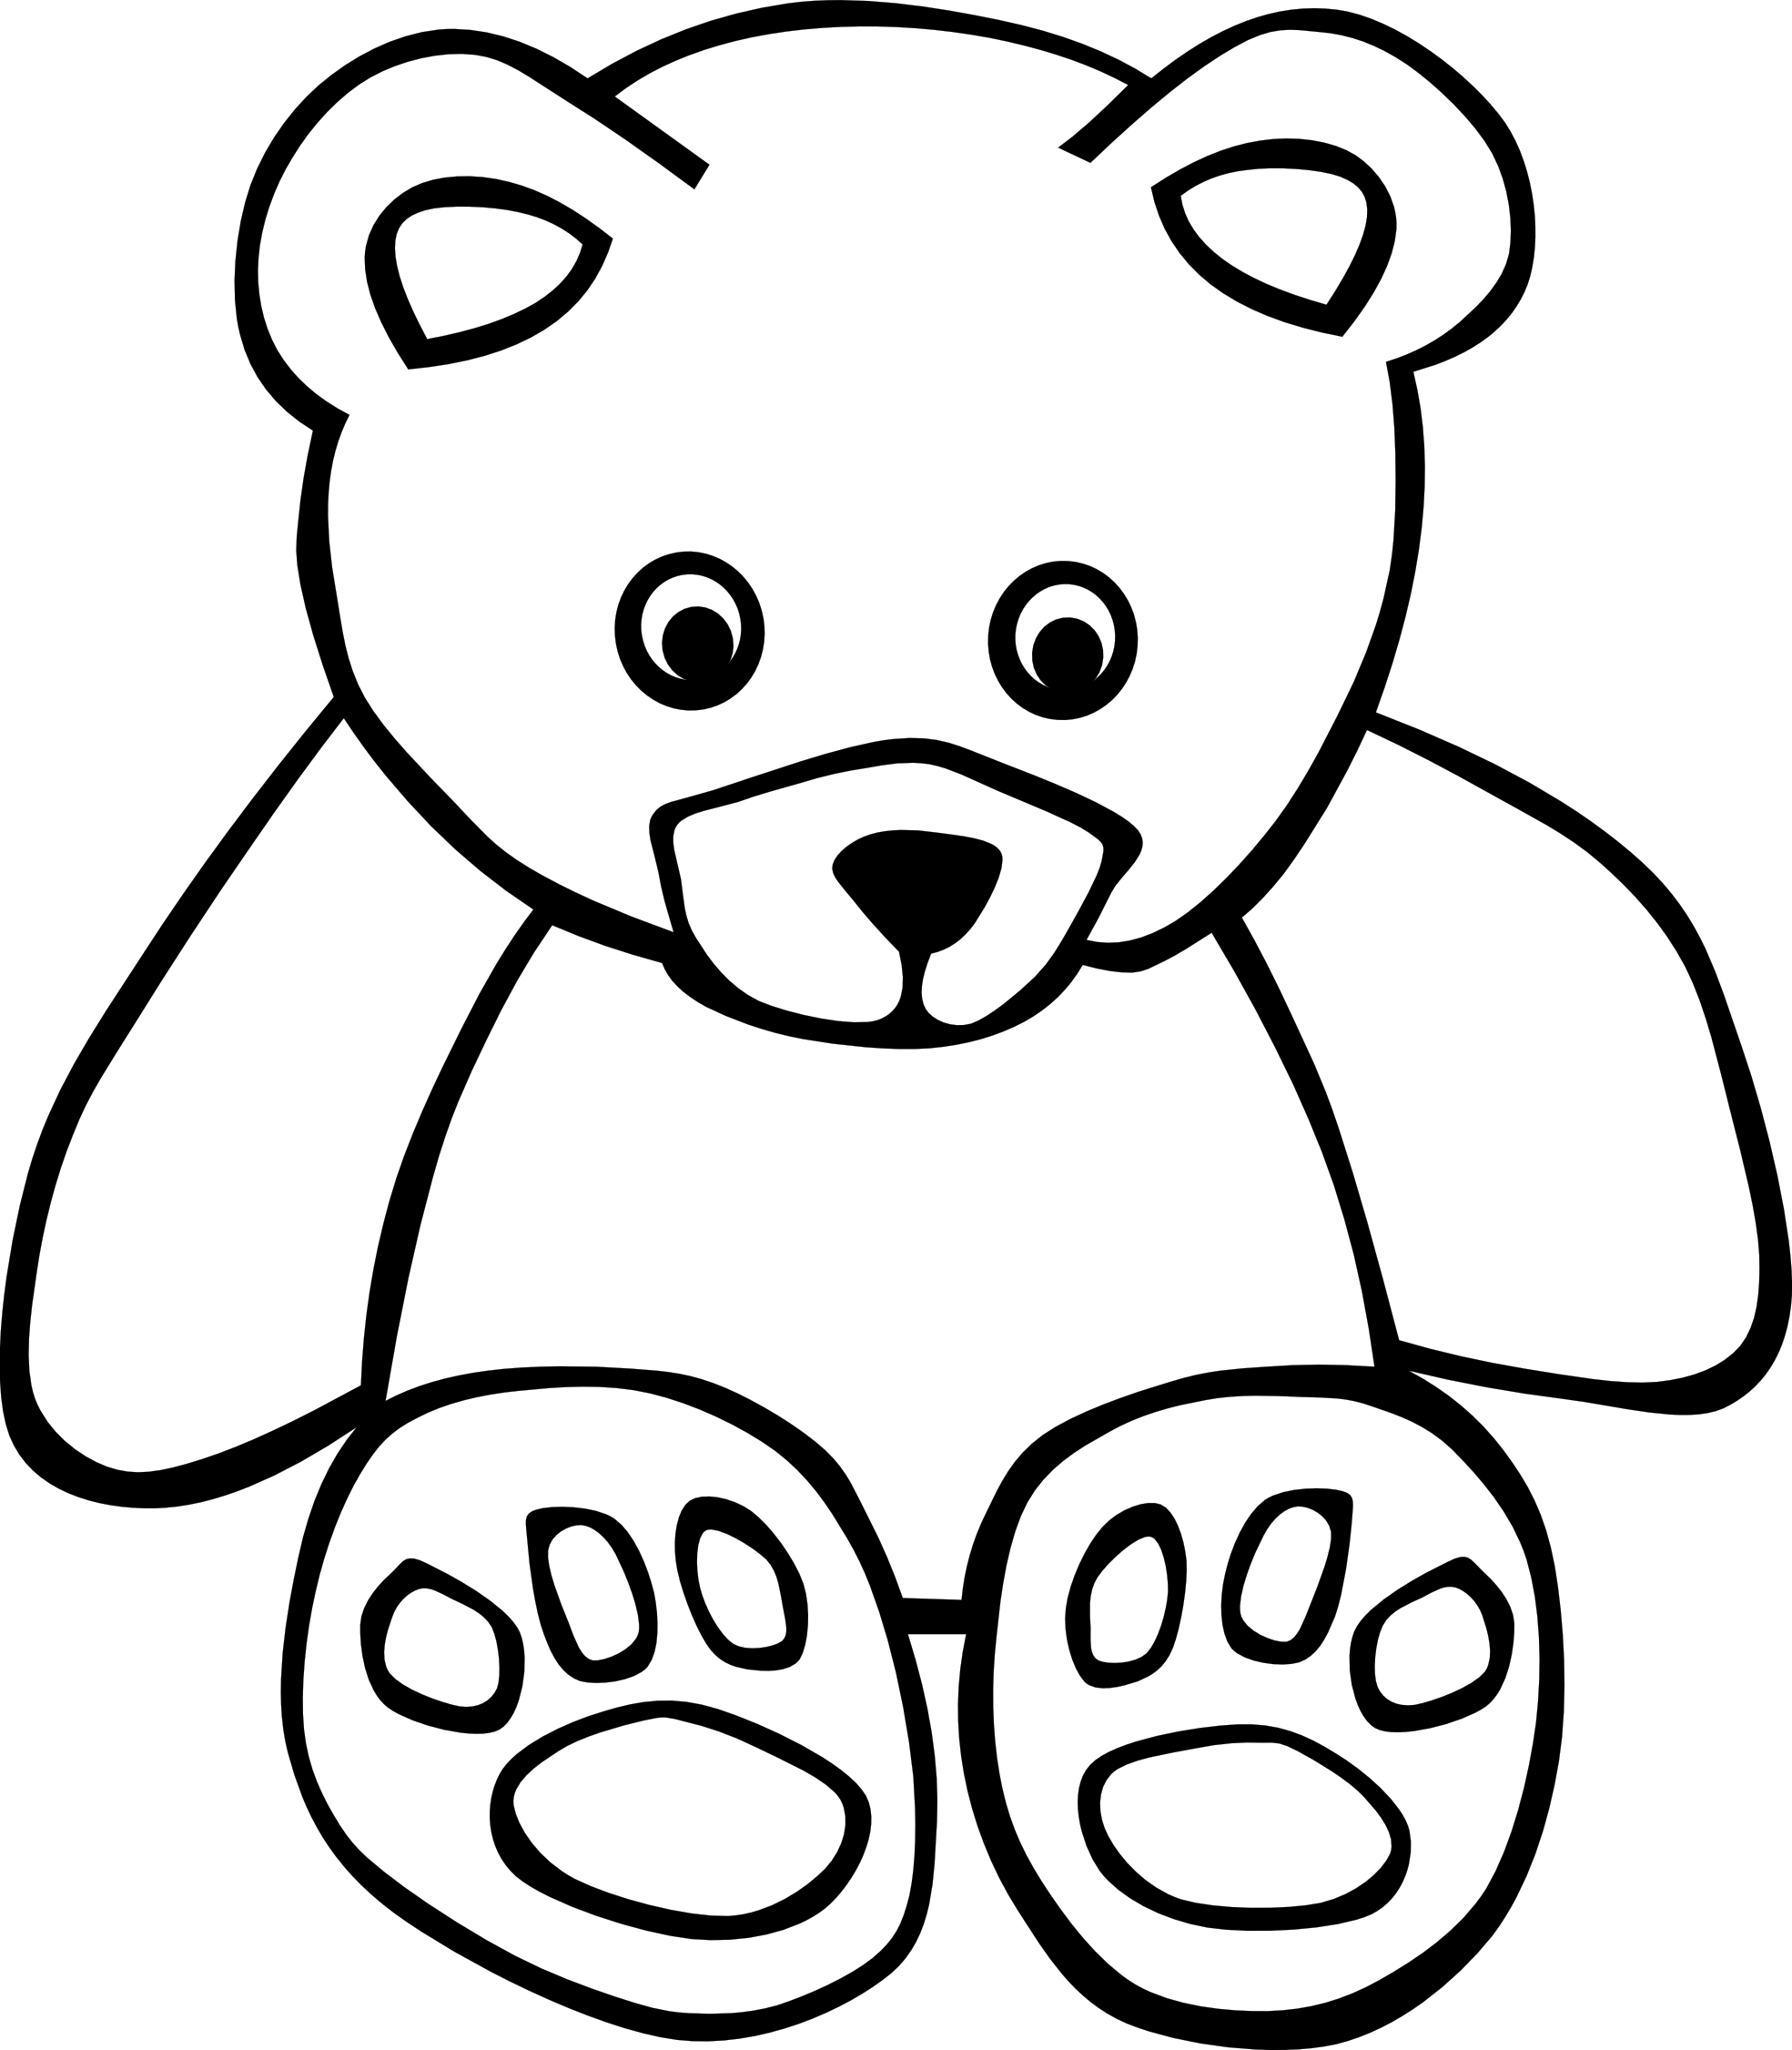 Bear black and white clipart banner royalty free stock 1271715 83 bear black white line art teddy bear ... - ClipArt Best ... banner royalty free stock